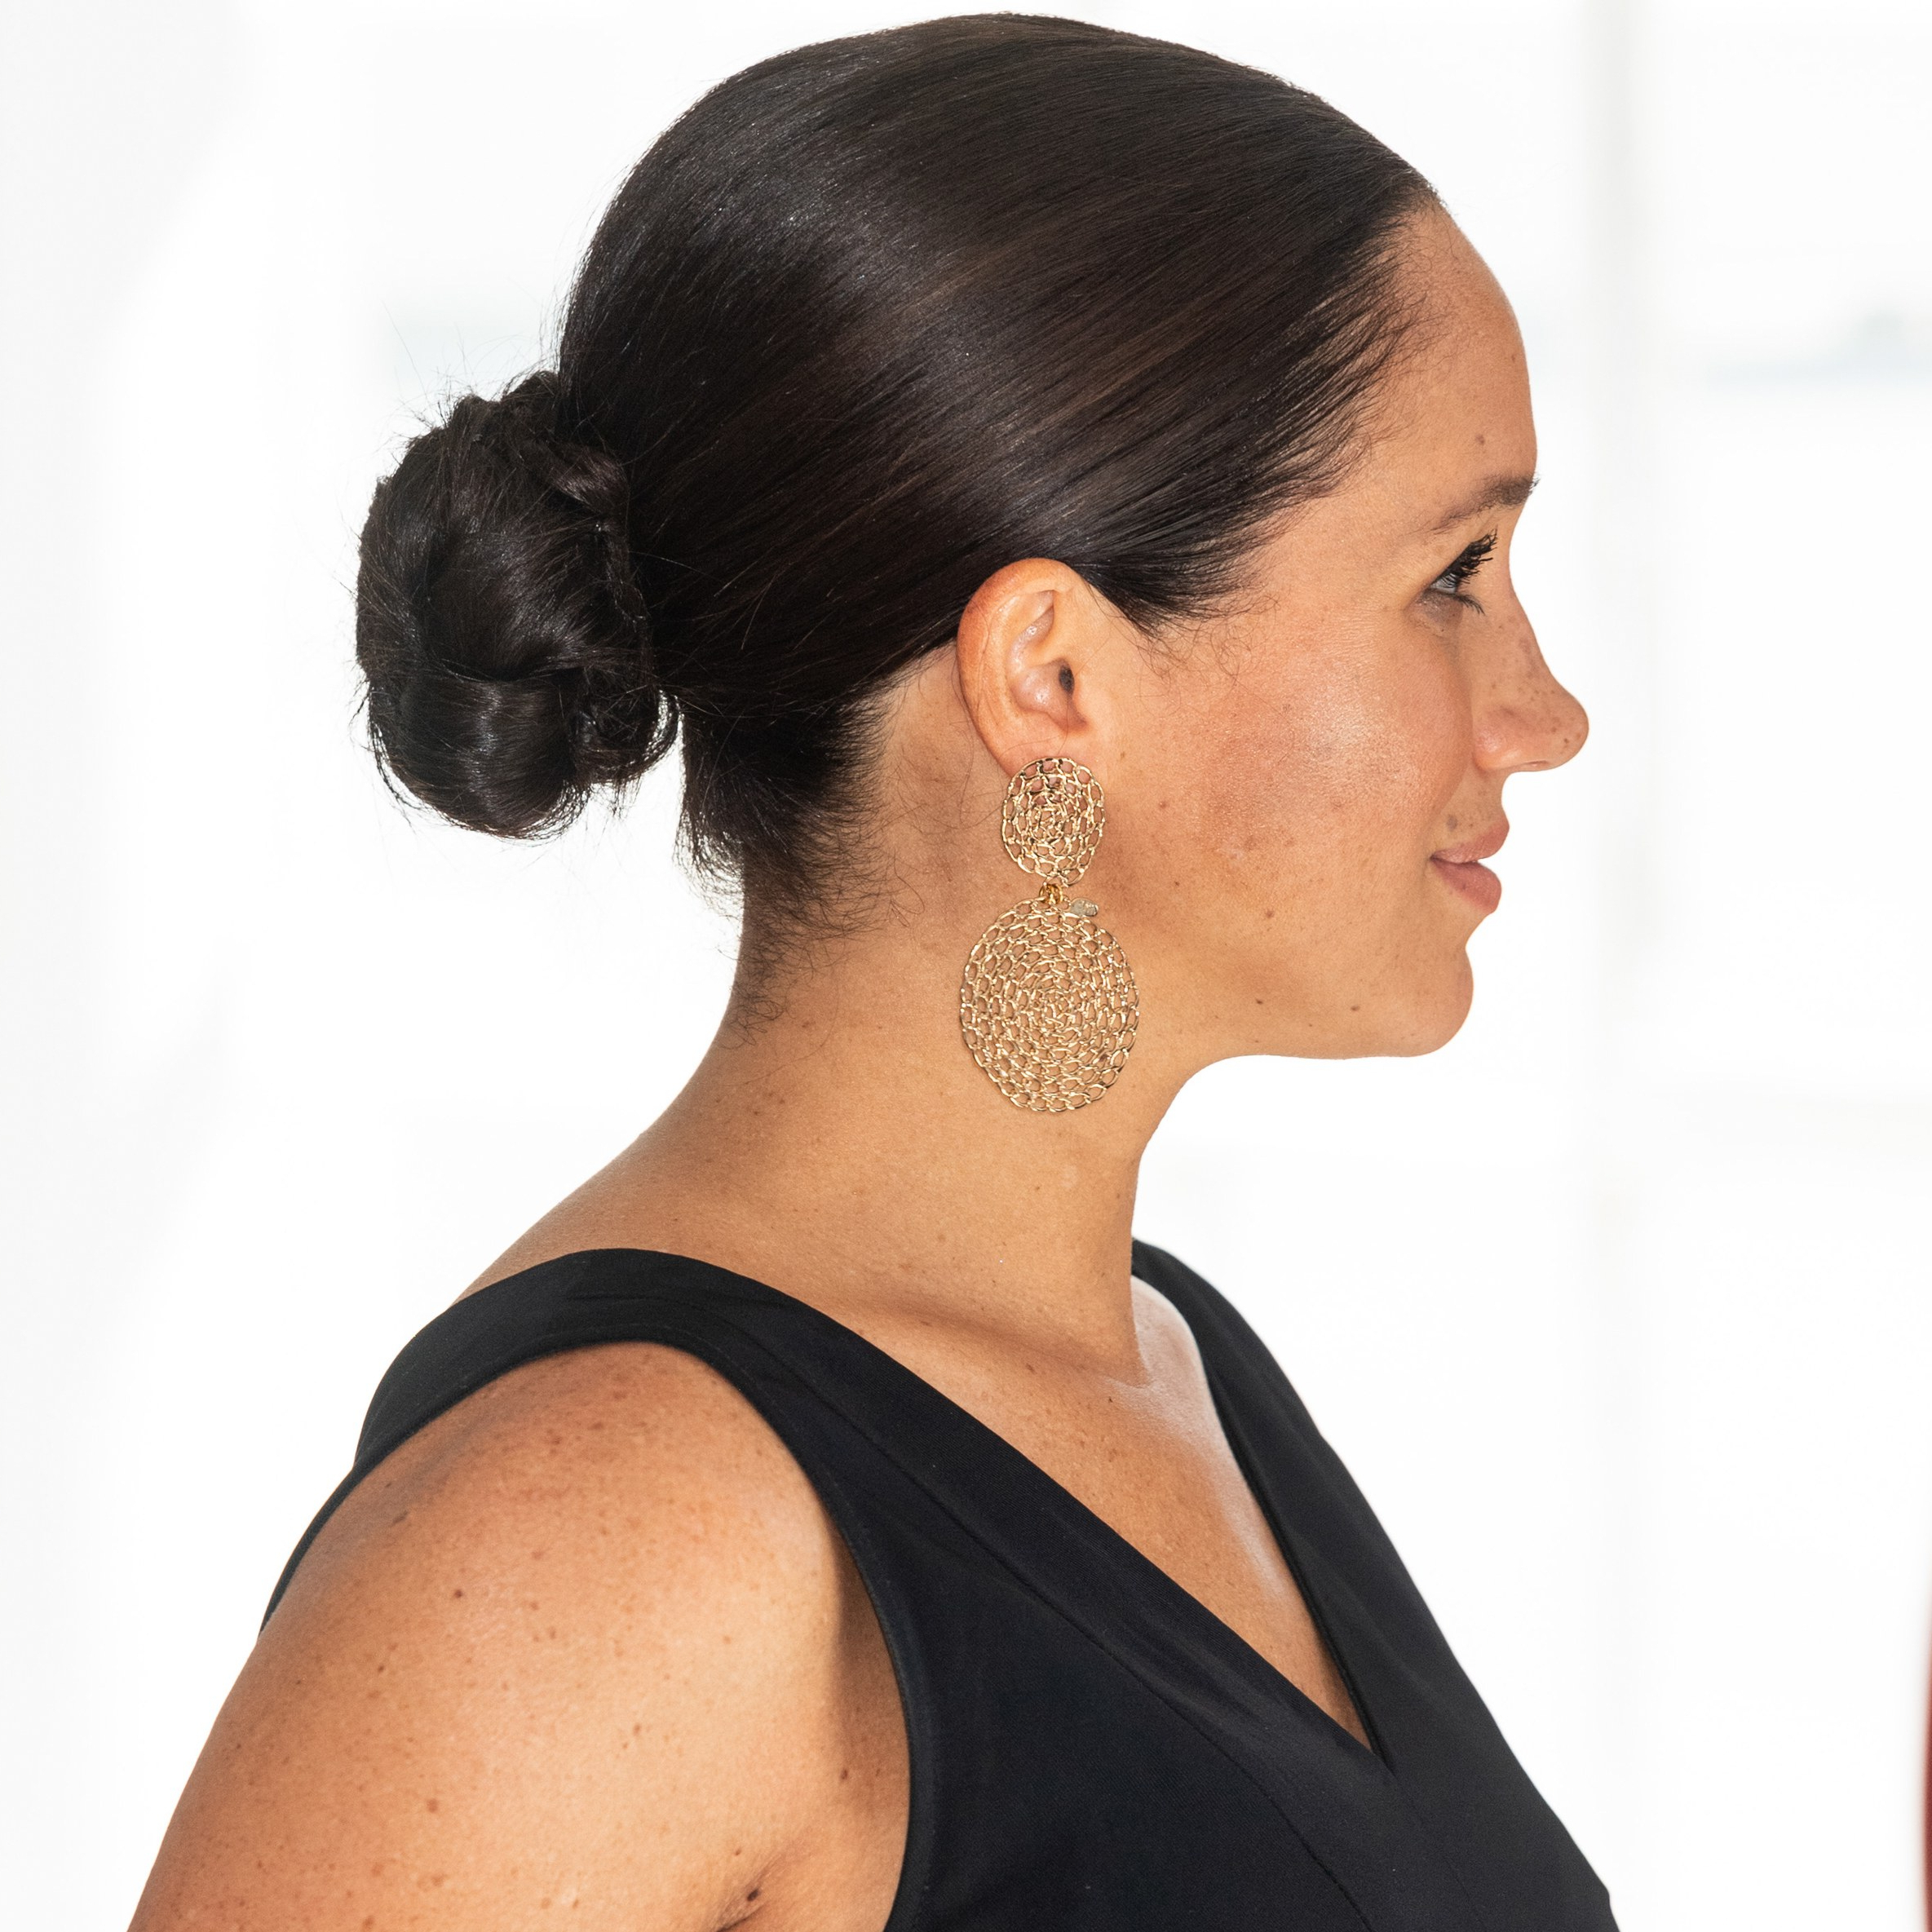 Allure Within Most Popular Sleek High Bun Hairstyles With Side Sweep (View 9 of 20)